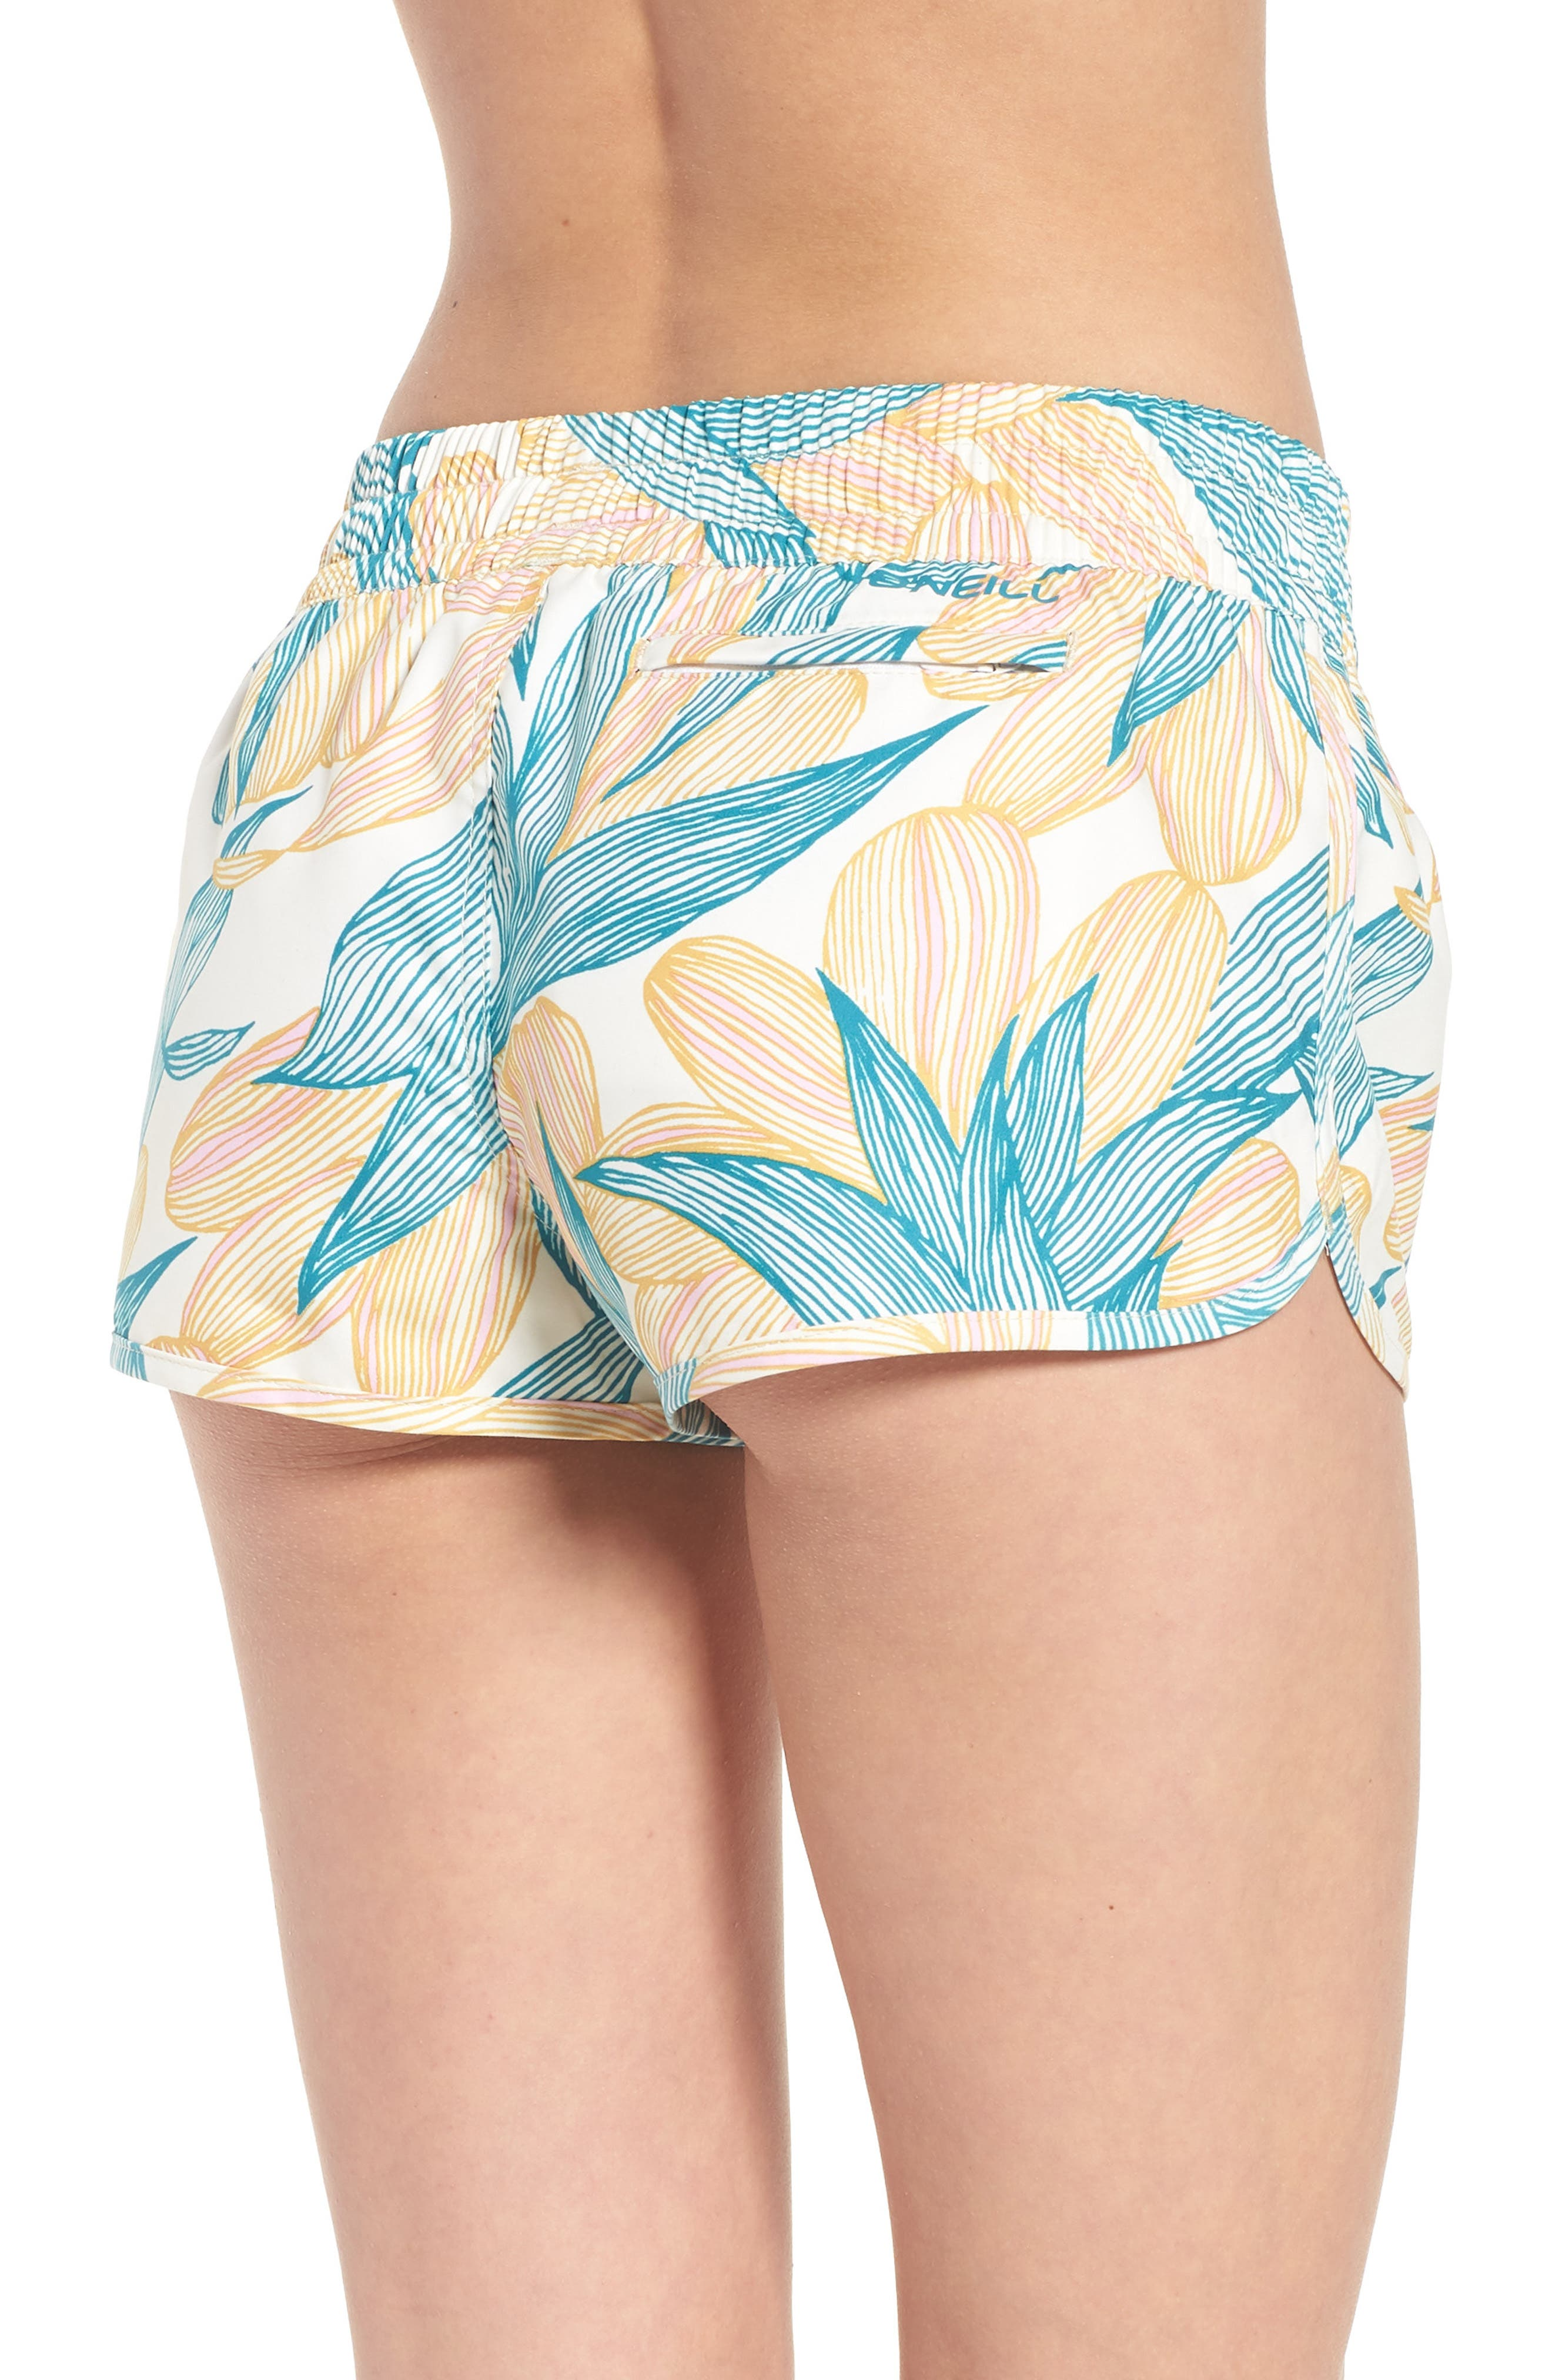 Bayside 2 Dynasuede Board Shorts,                             Alternate thumbnail 2, color,                             Island Turquoise